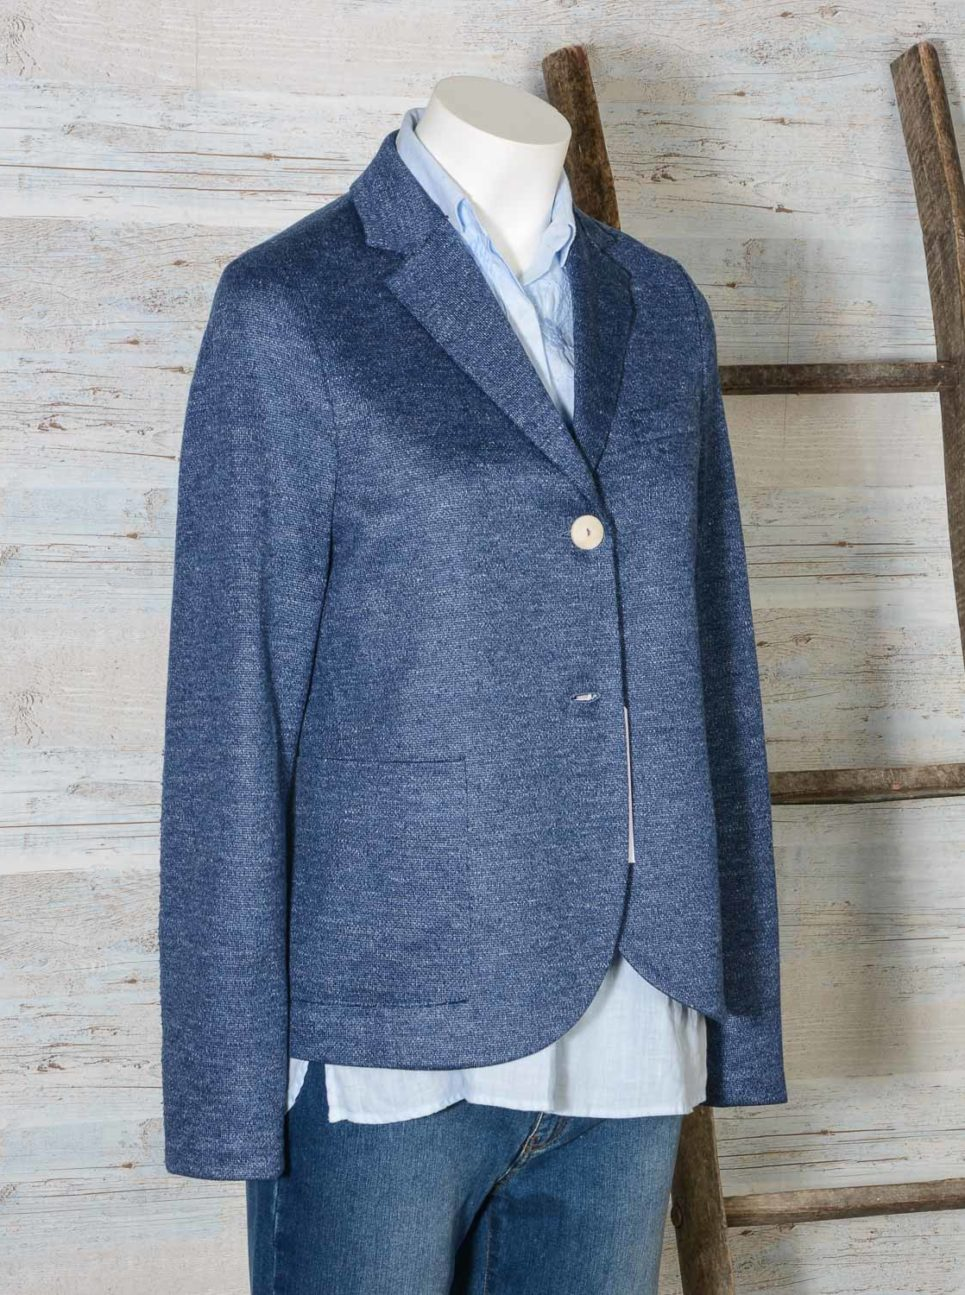 Blazer donna due bottoni in lino Jaspè HARRIS WHARF LONDON A3220PDD 355 Denim -10